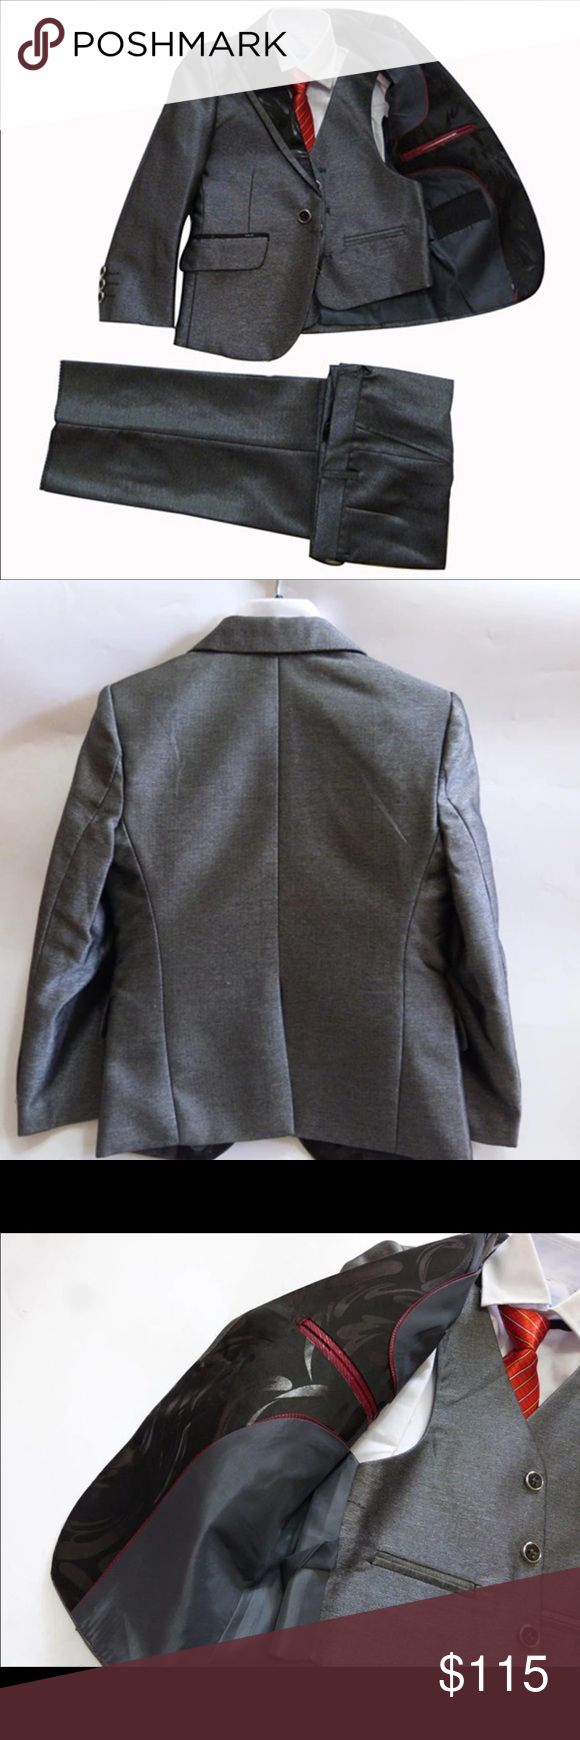 Boys Tuxedo Jacket Wedding 3 PCS Formal Suit Grey Shipping Time: 12-21 Days Expedited shipping available for extra fee. Price of renting a tuxedo or suit for kids is overpriced. It is cleaner, safer, and cost effective to buy your own boys Suit in the long run! They can always wear it for church or any other party or wedding without having to pay all of the fees and prices of renting someone else's worn suits. 👔 EVERY MAN NEEDS ONE GOOD SUIT! 😀 Size chart in pictures! Size 3T -14 Matching…